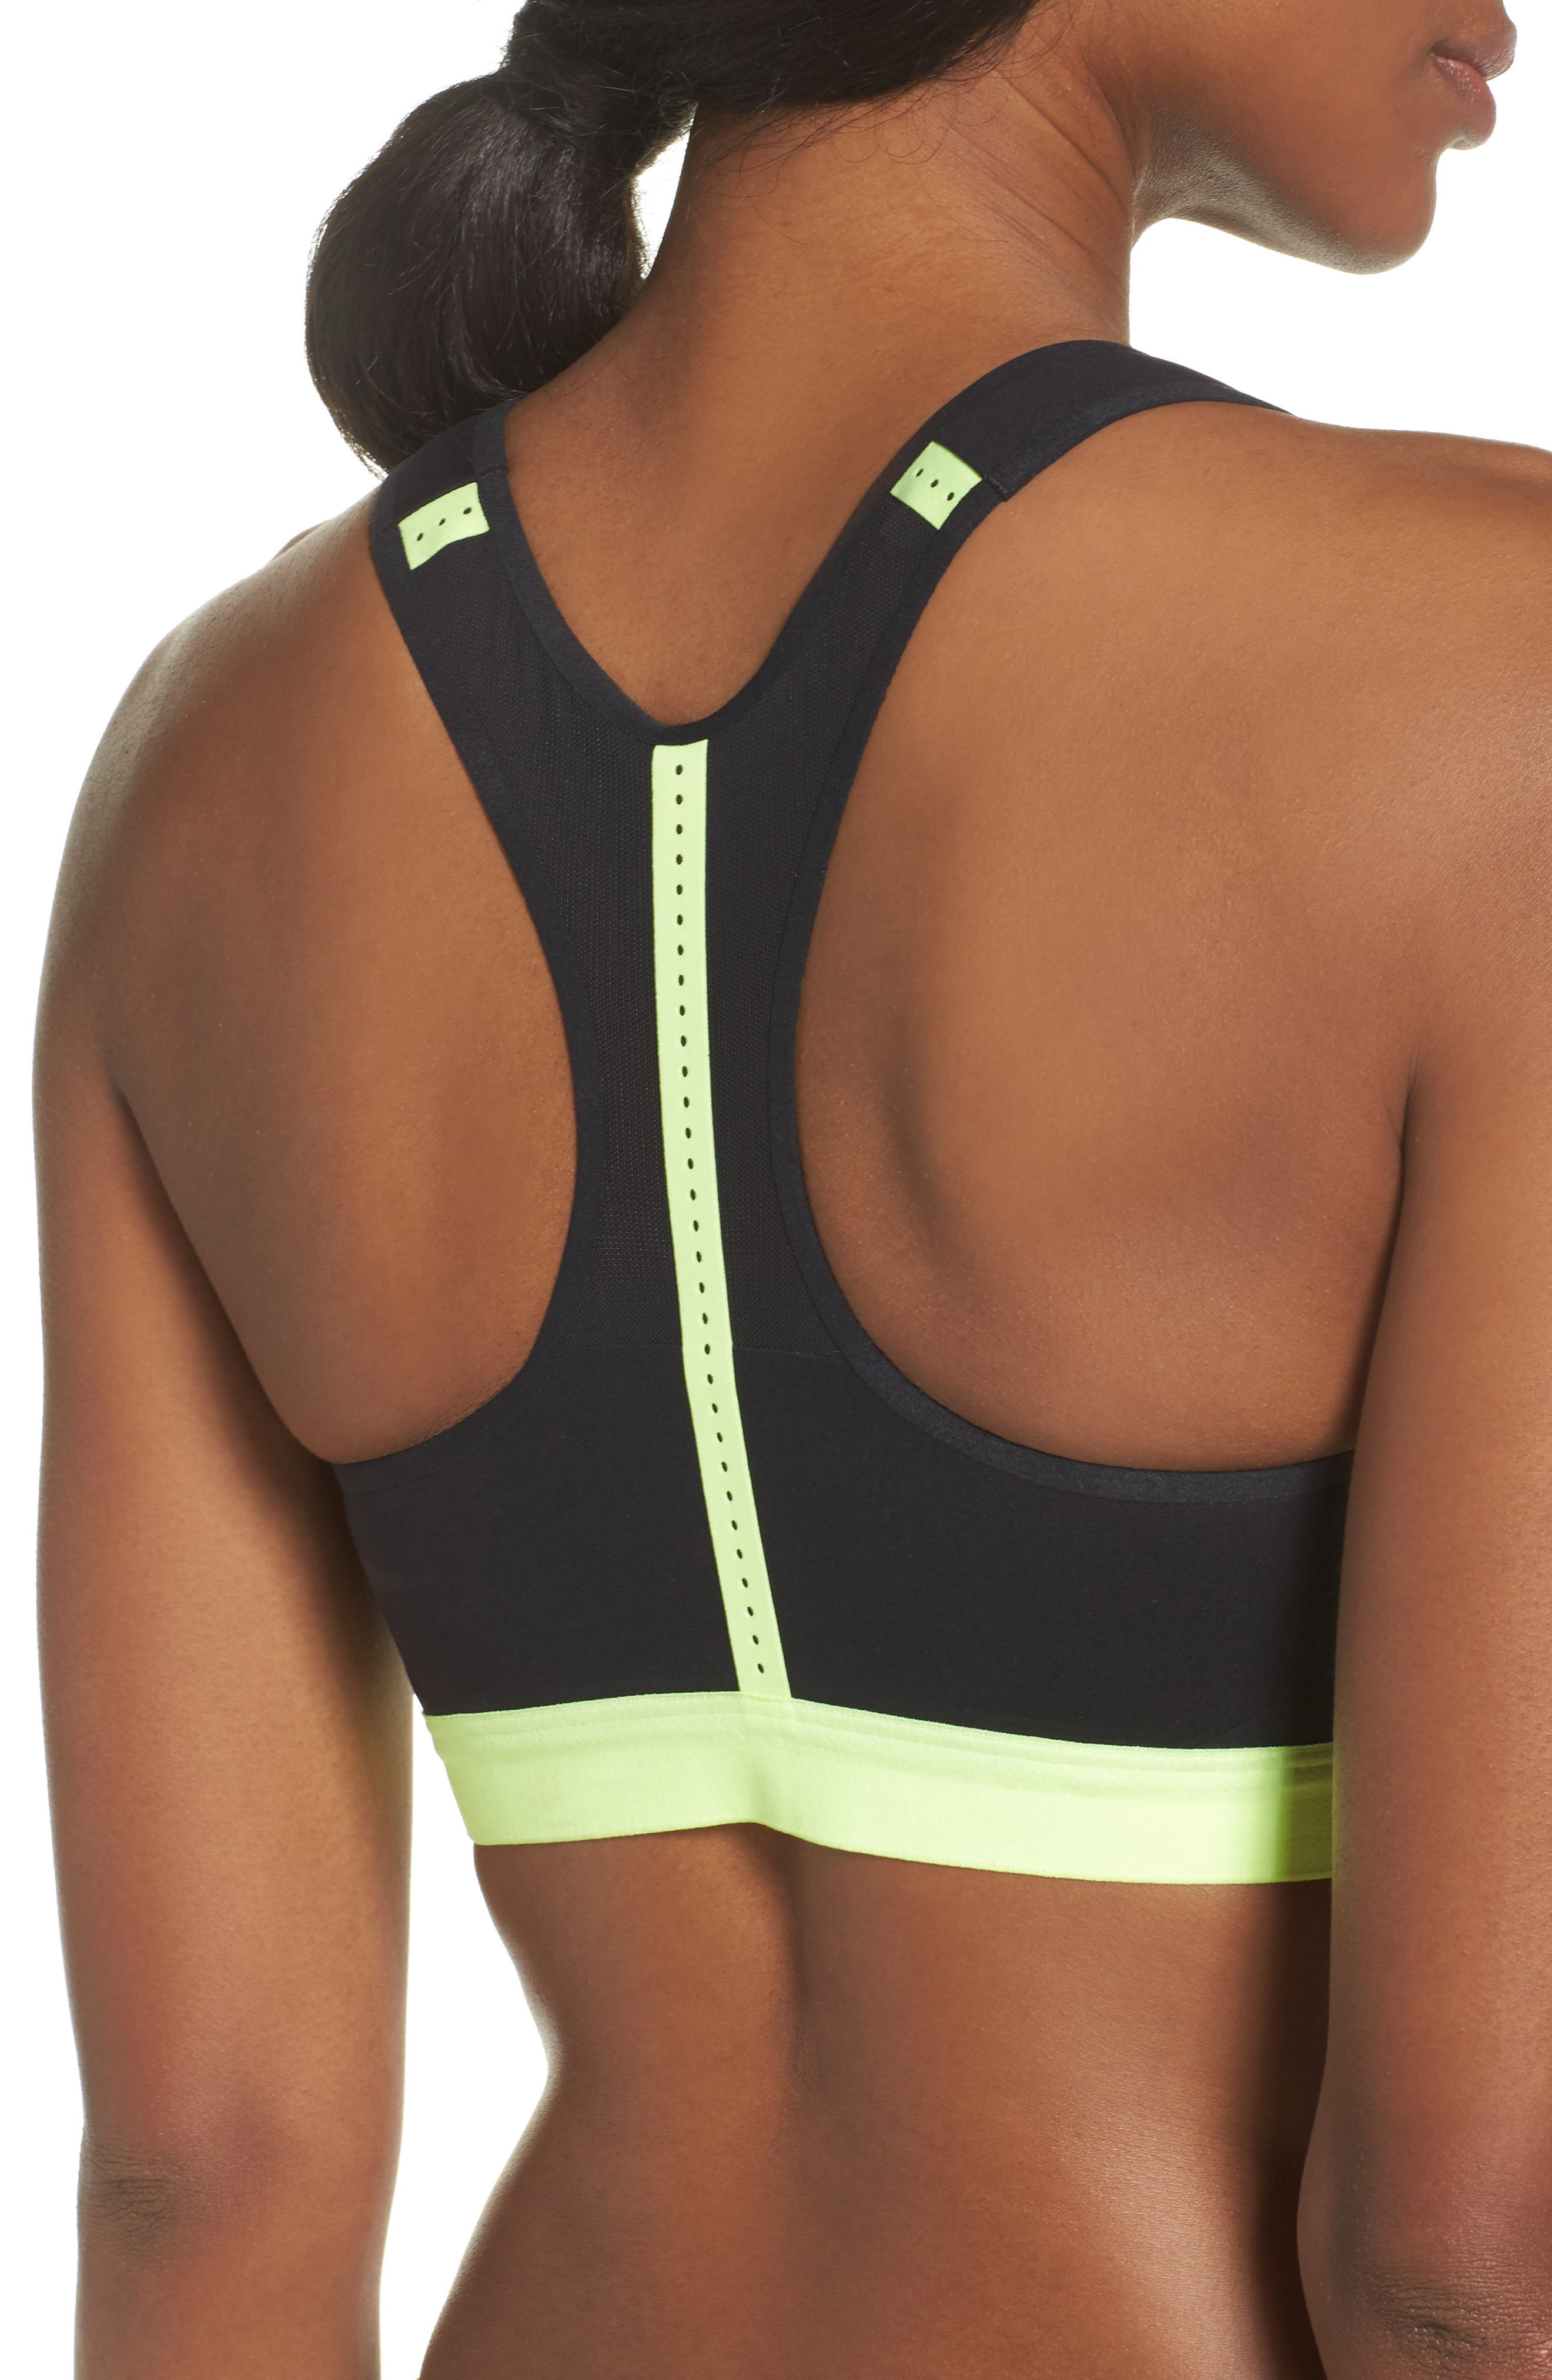 Motion Adapt Sports Bra,                             Alternate thumbnail 4, color,                             010